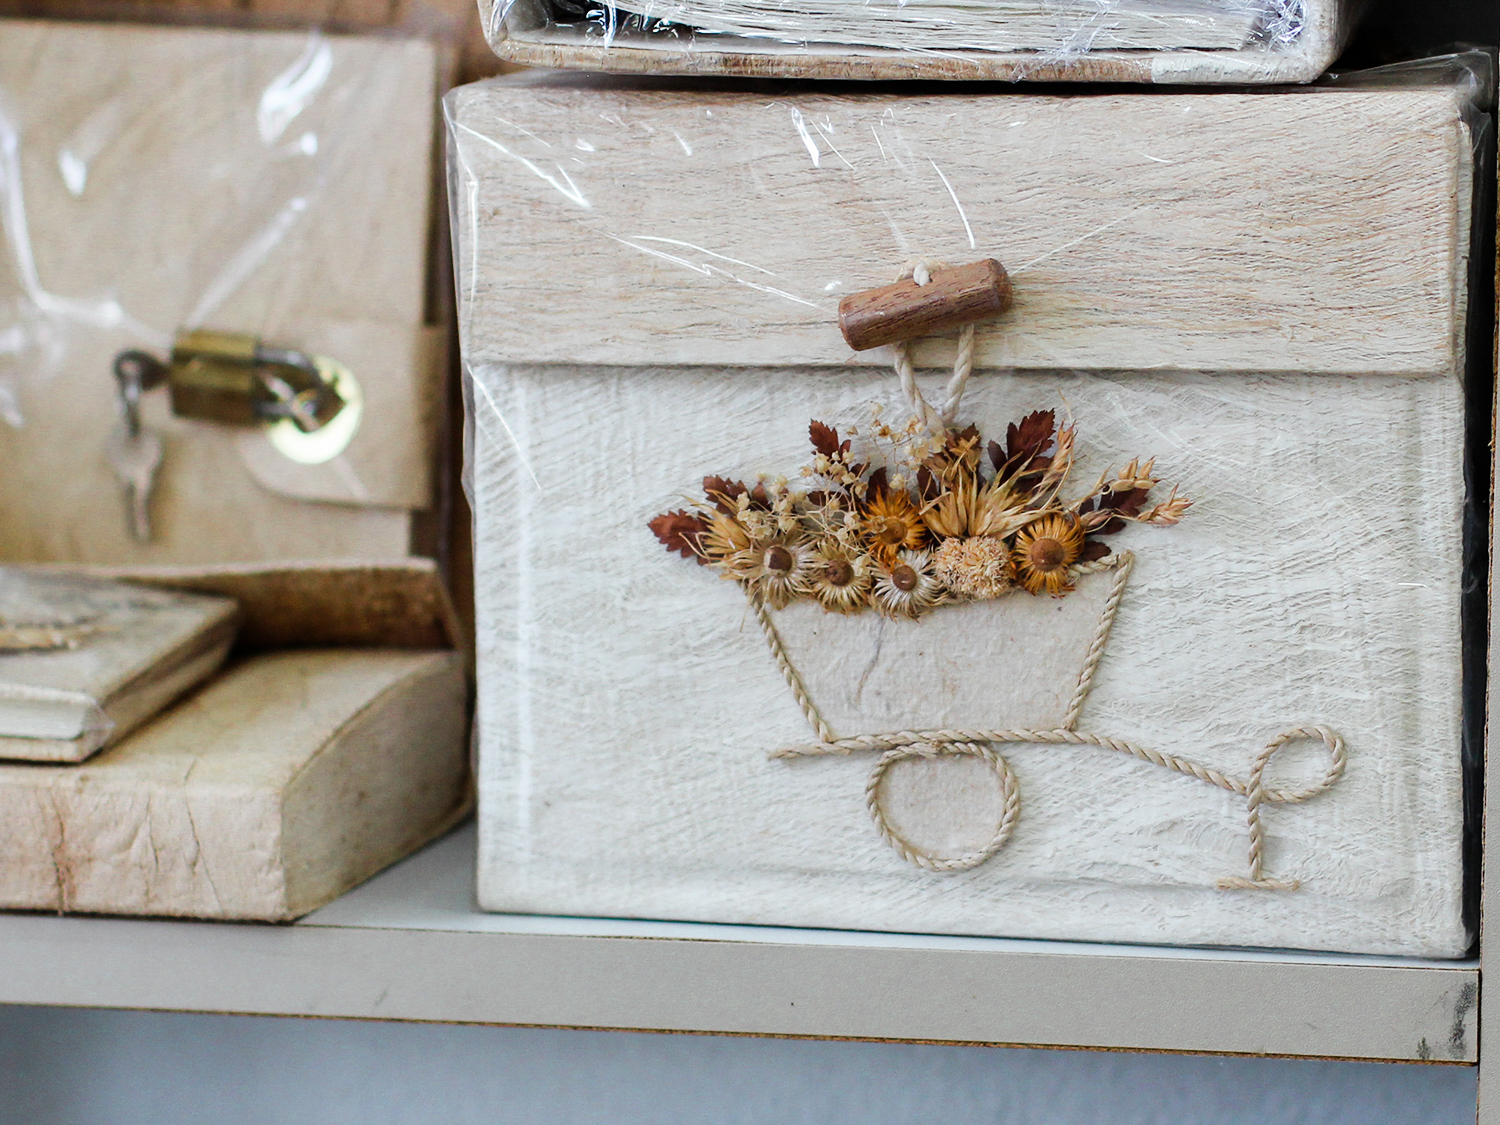 Saa Paper Scrapbook with dried flowers